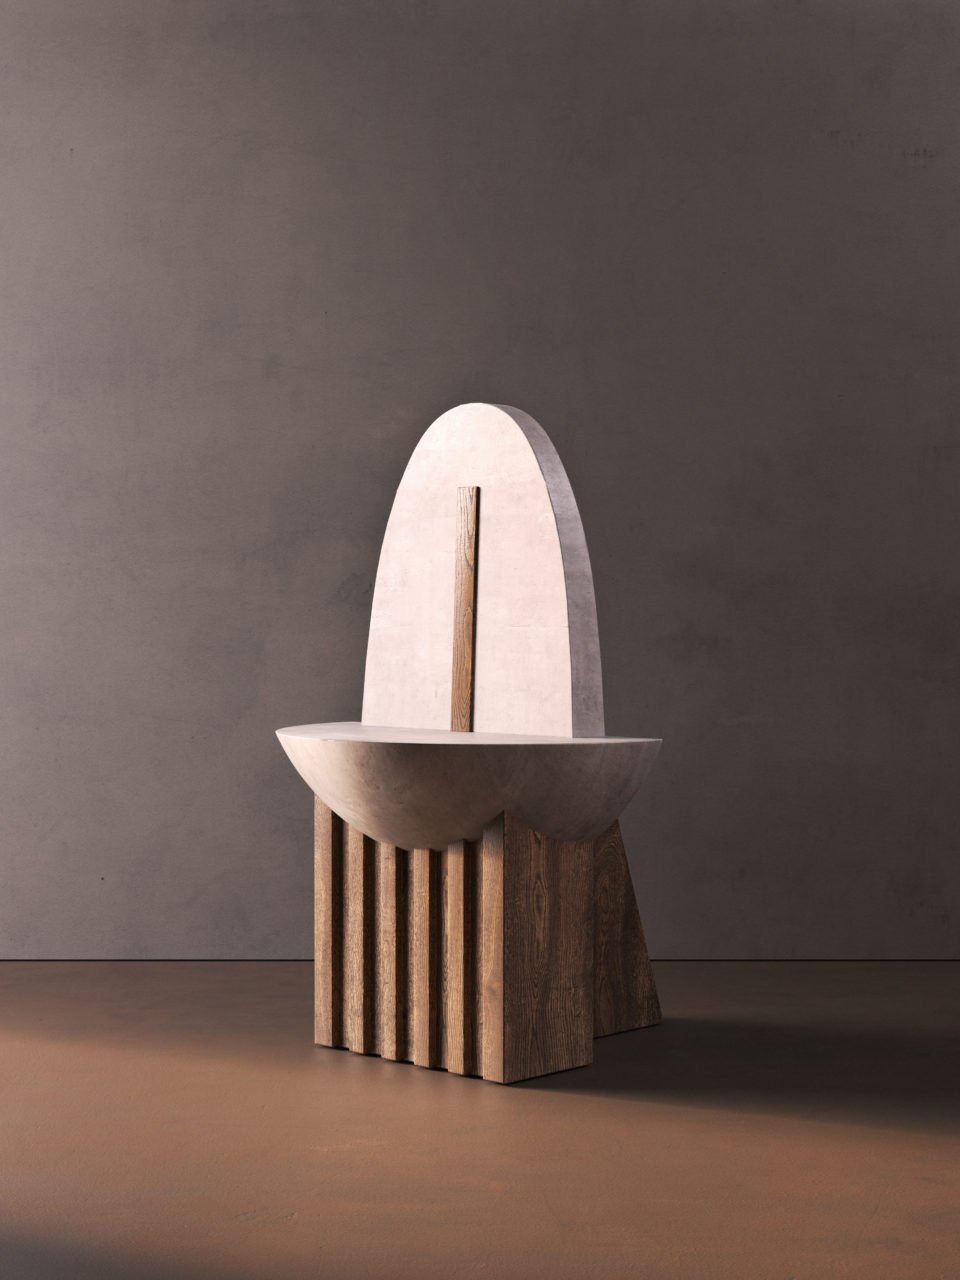 A curvilinear and sculptural chair in front of a gray backdrop